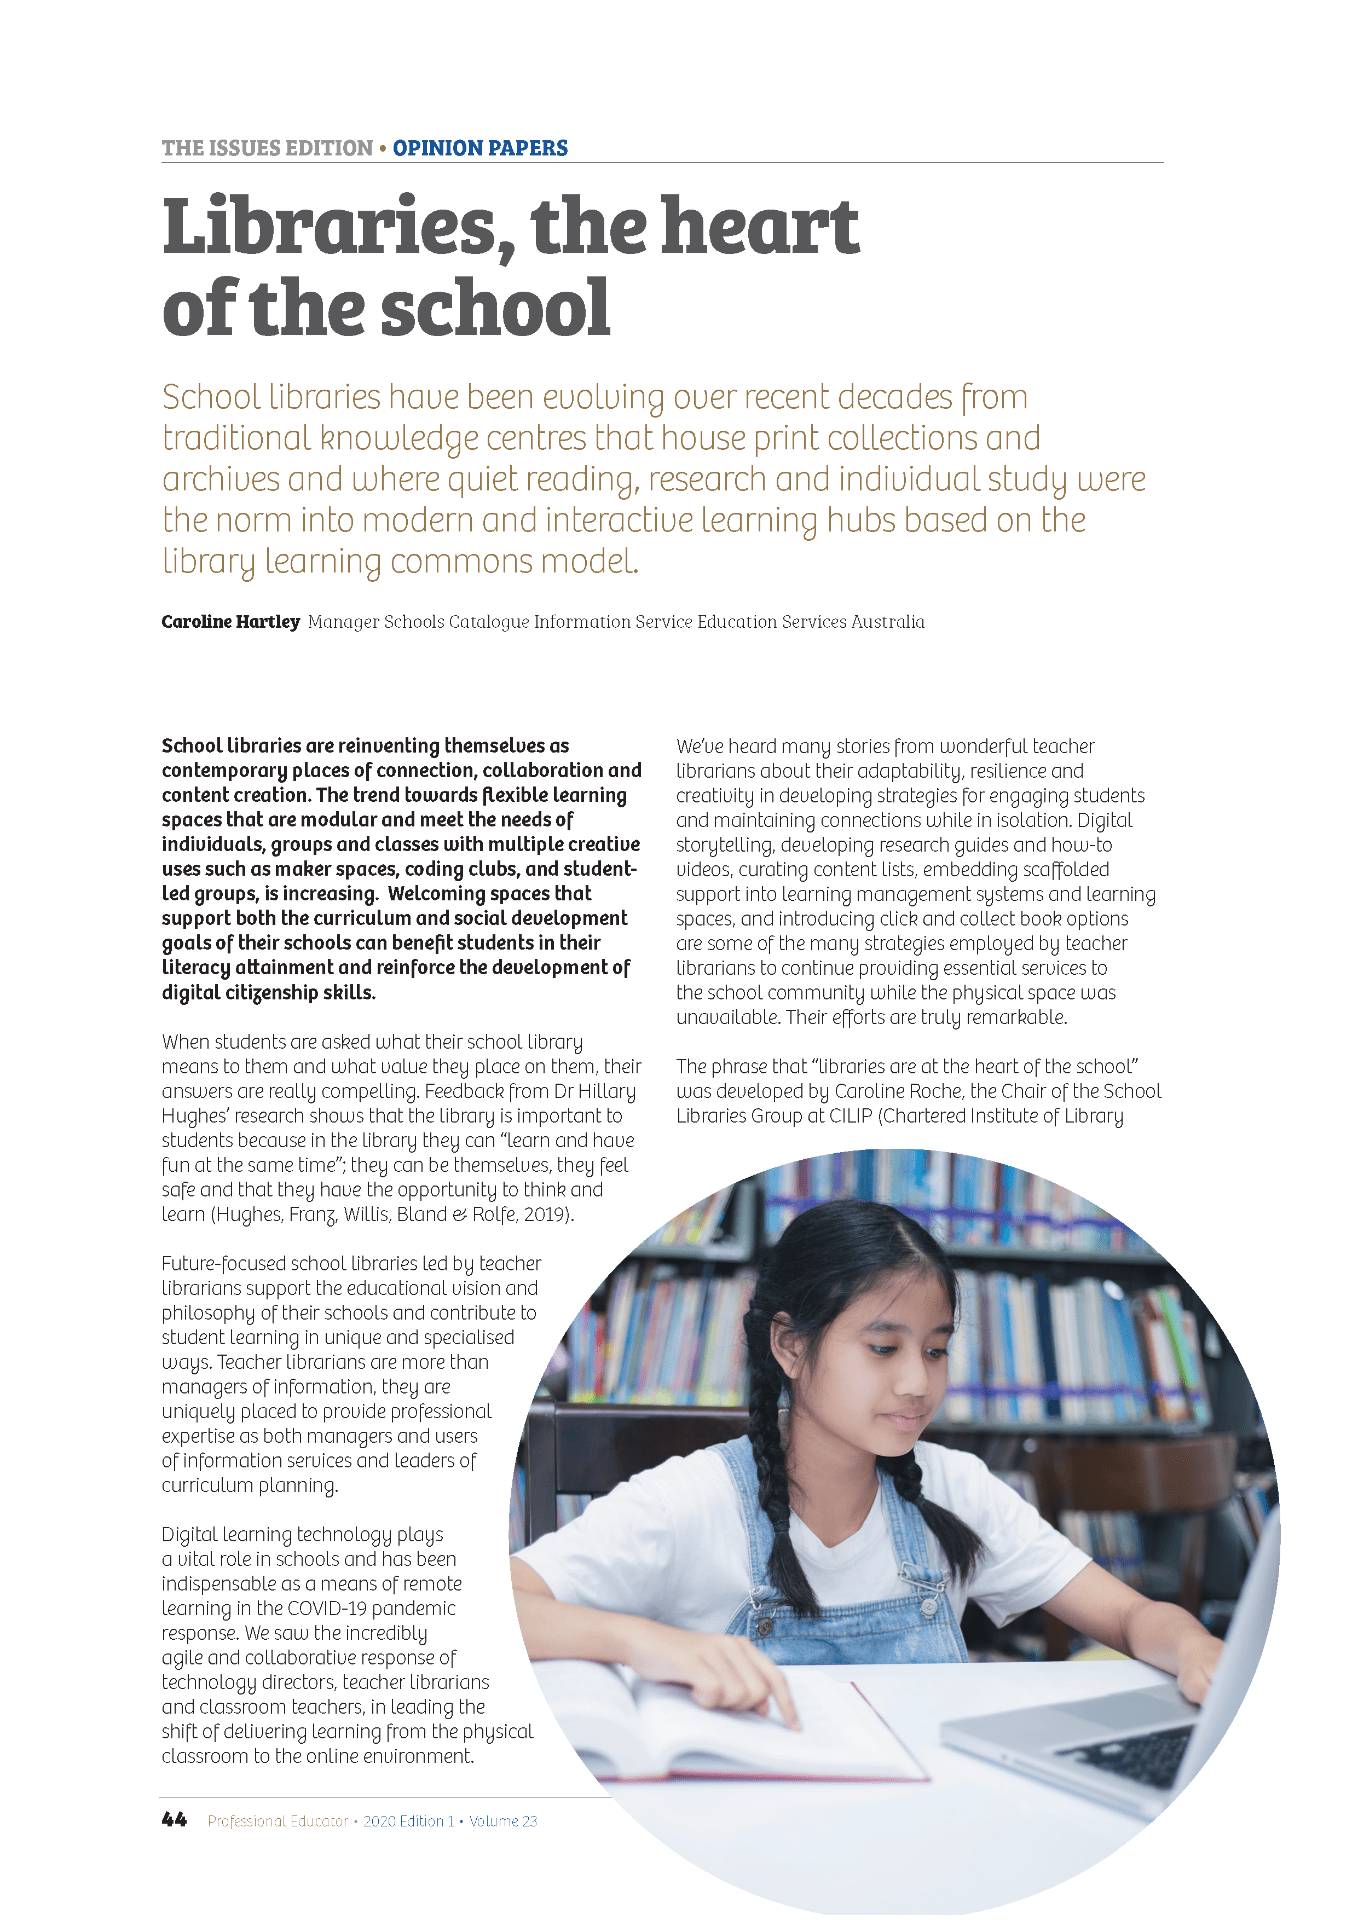 Magazine article: Libraries, the heart of the school